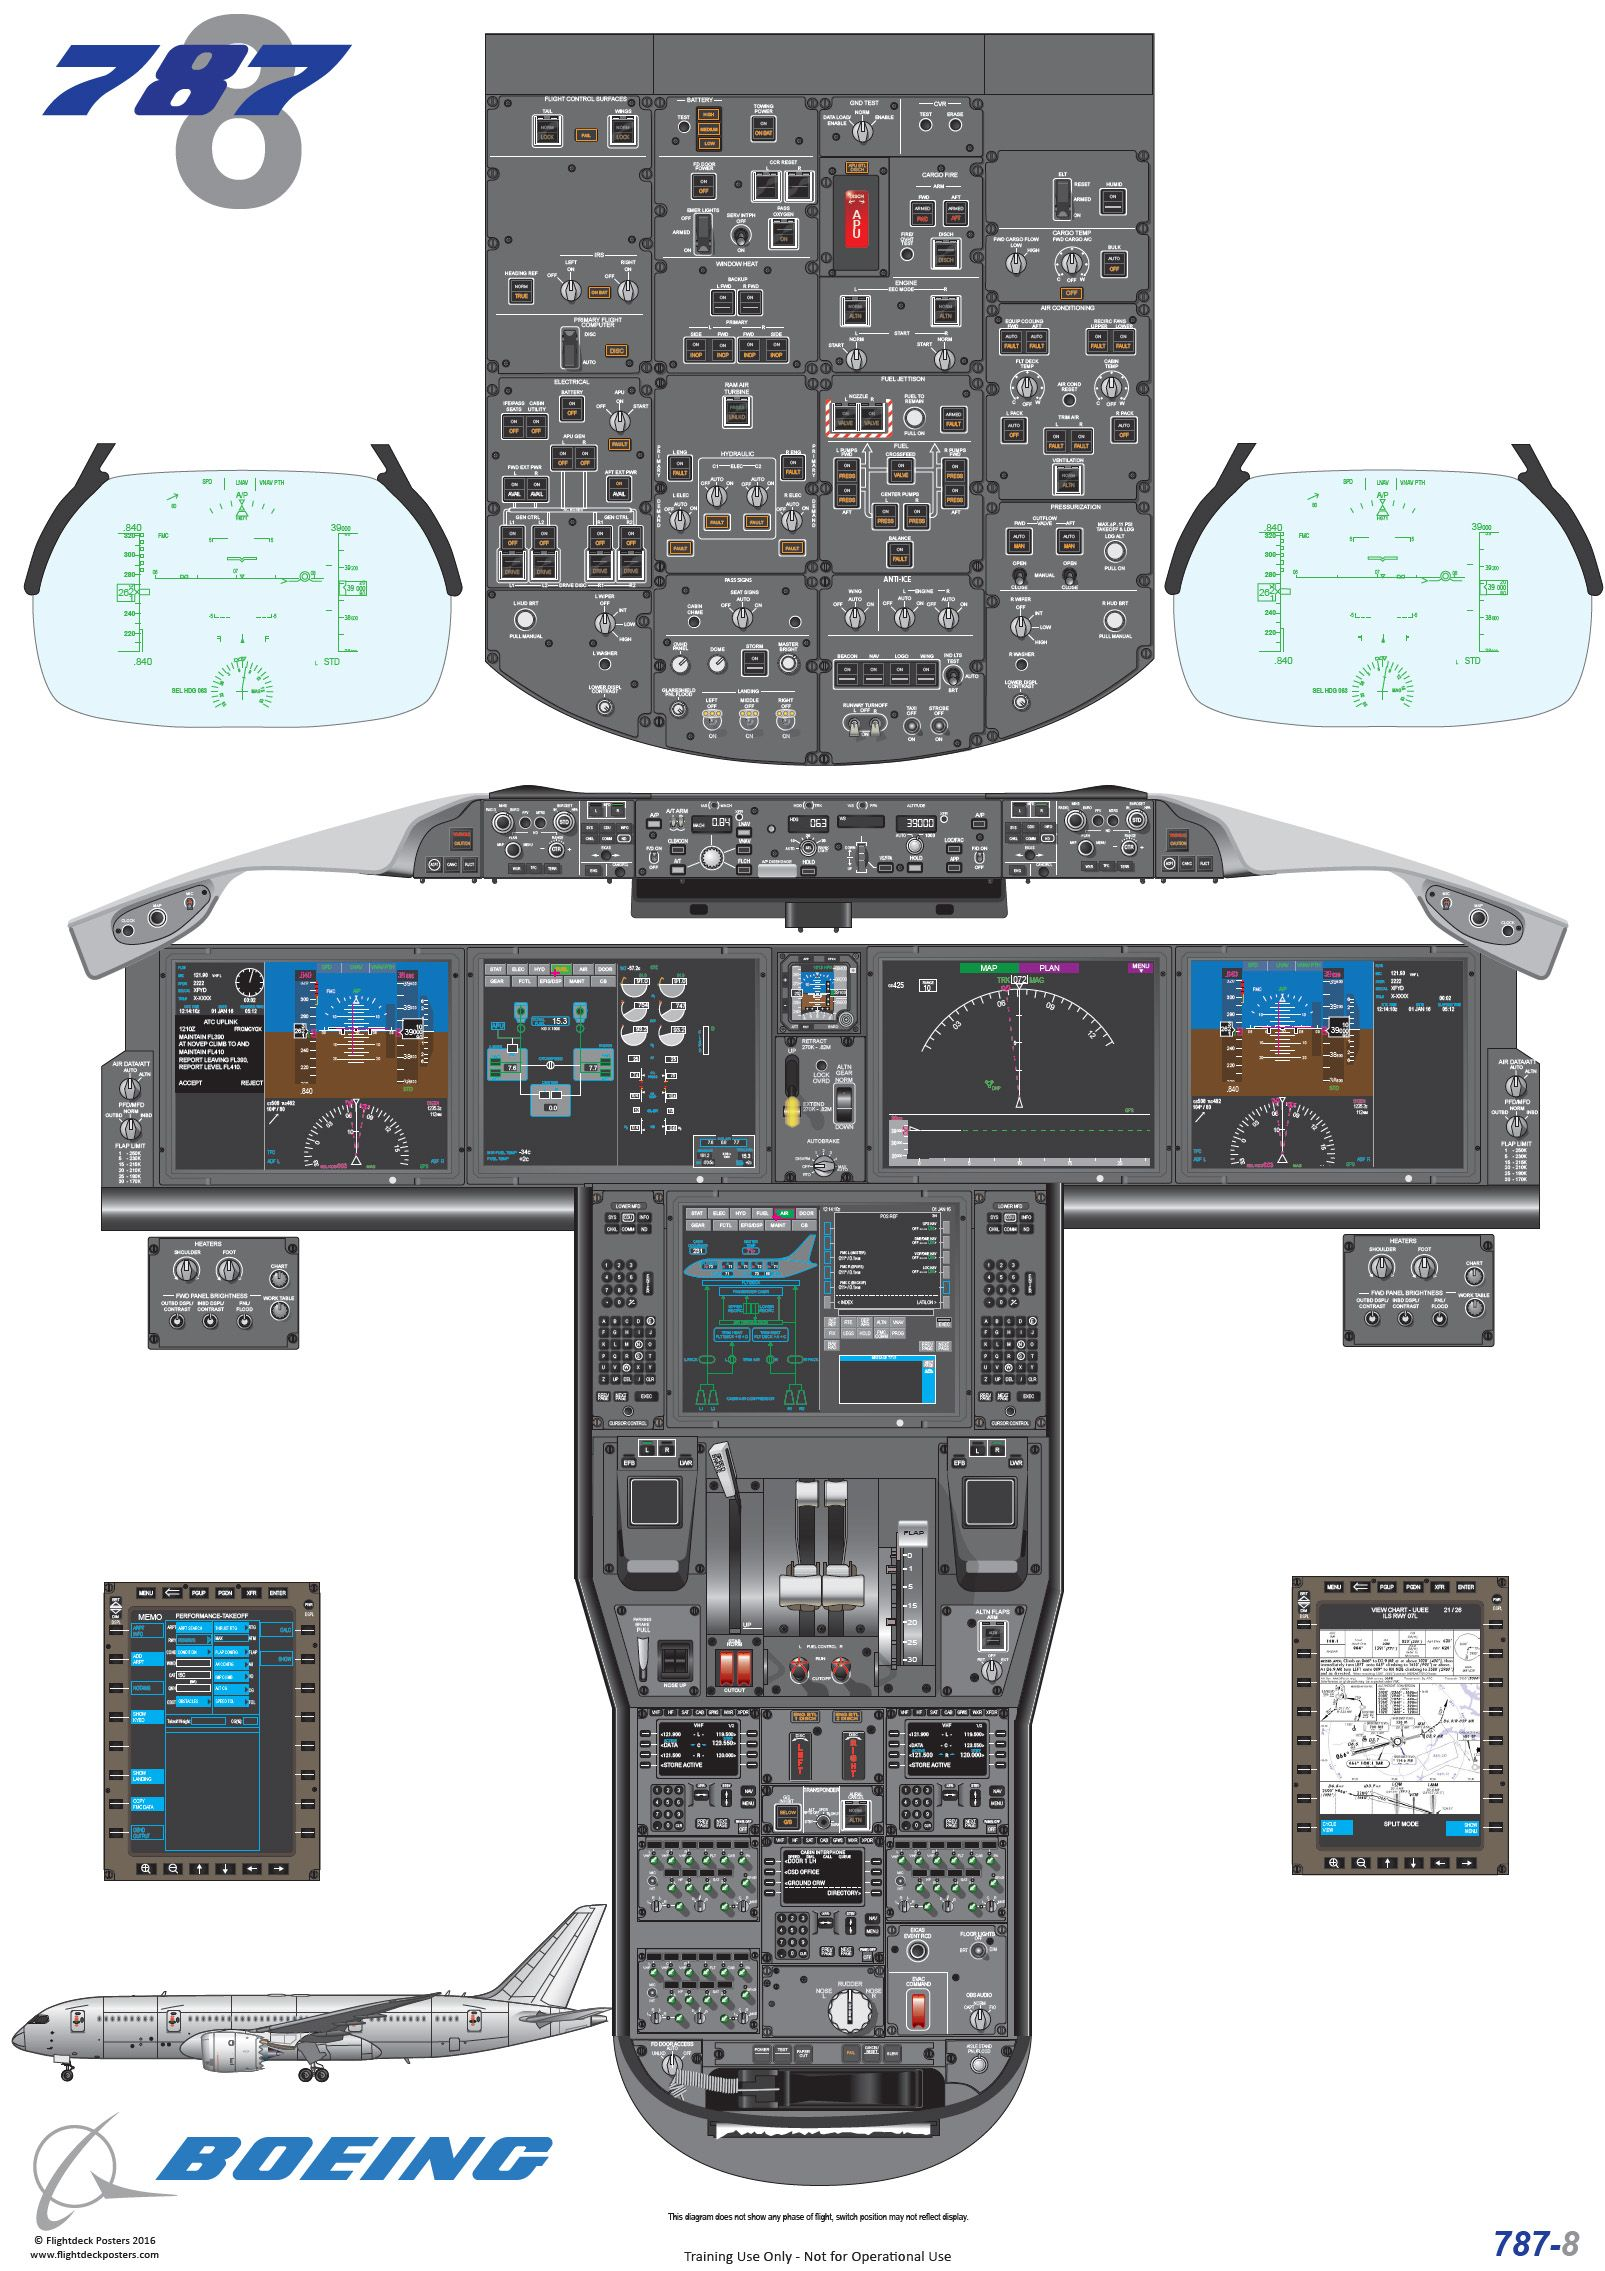 Boeing Cockpit Diagram Used For Training Pilots AVIATION - Airline captain takes amazing photos from his cockpit and no theyre not photoshopped